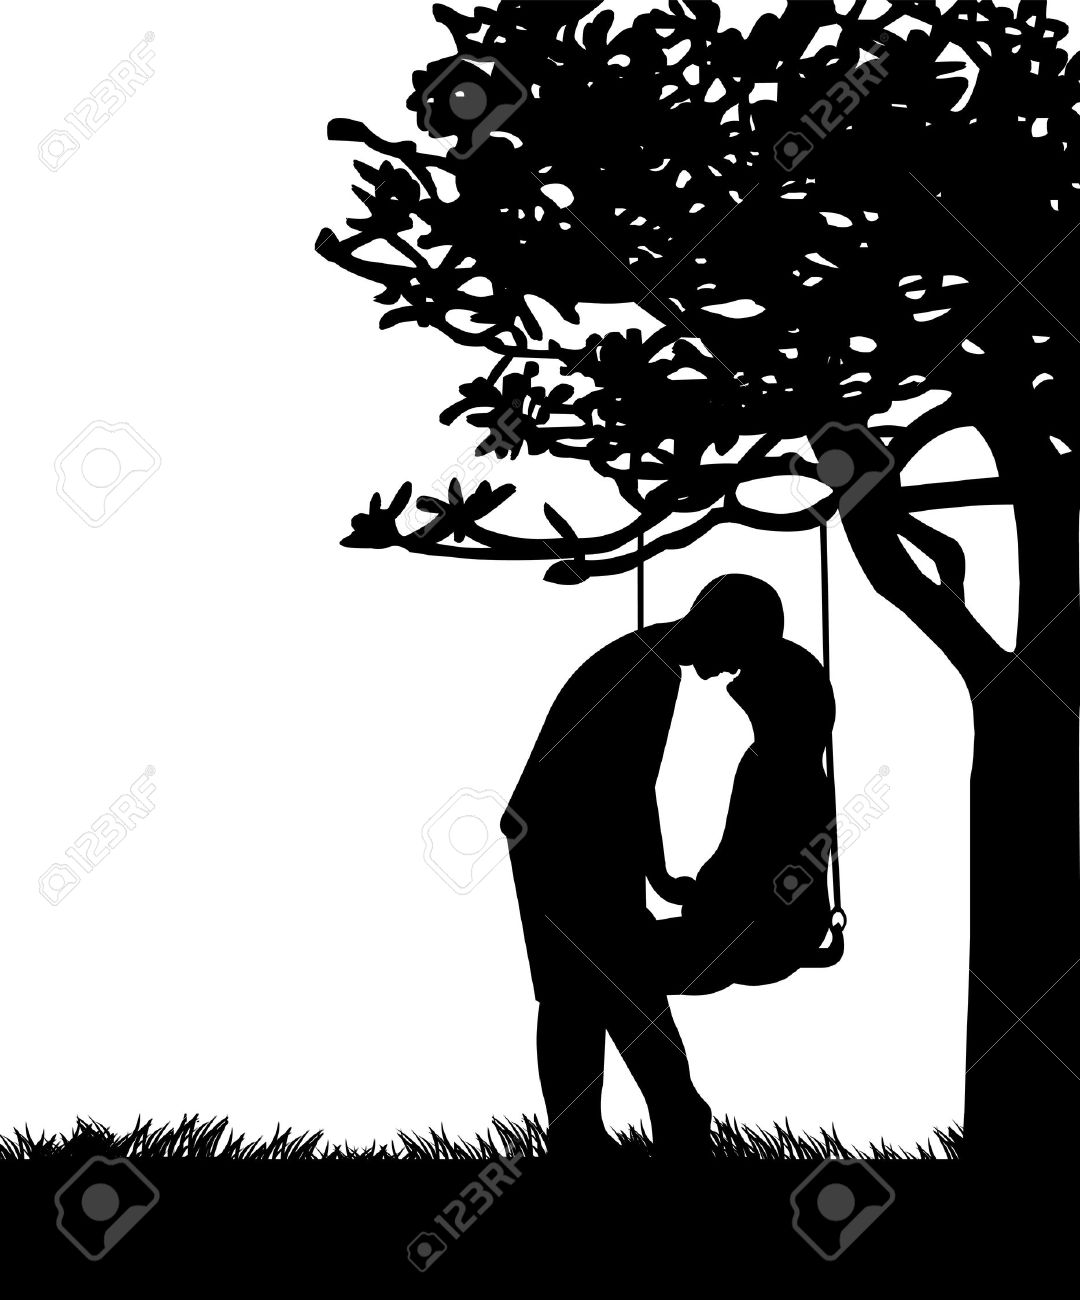 Couple in love on Valentine s Day on a swing in park or garden silhouette Stock Vector - 17358422